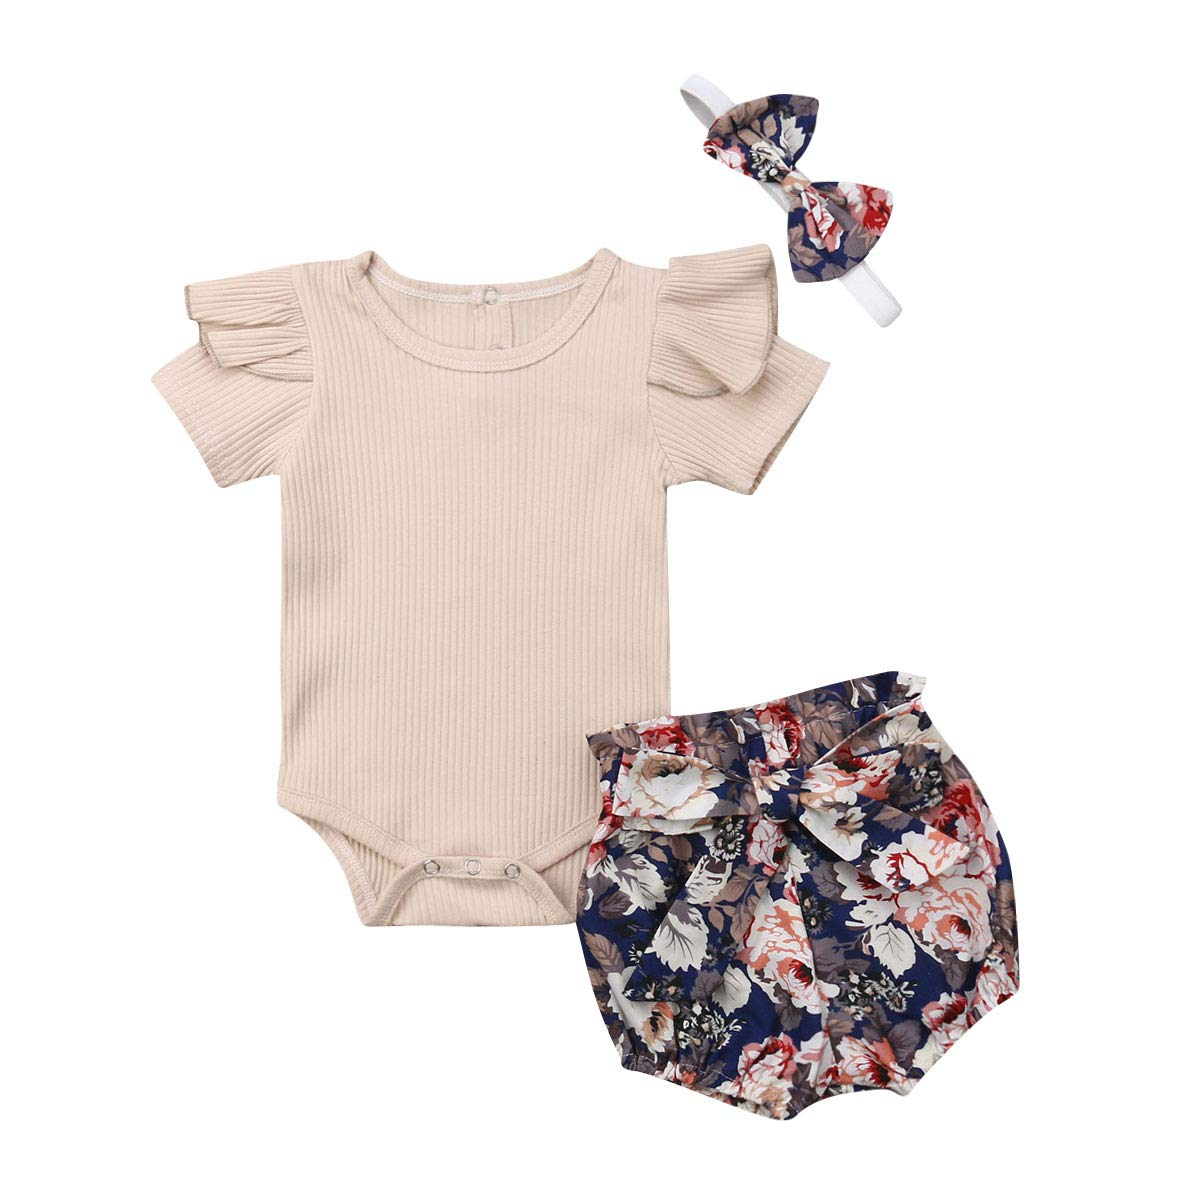 Toddler Baby Girls Summer Short Set Ruffle Top+Floral Short Pants Summer Clothes Outfit